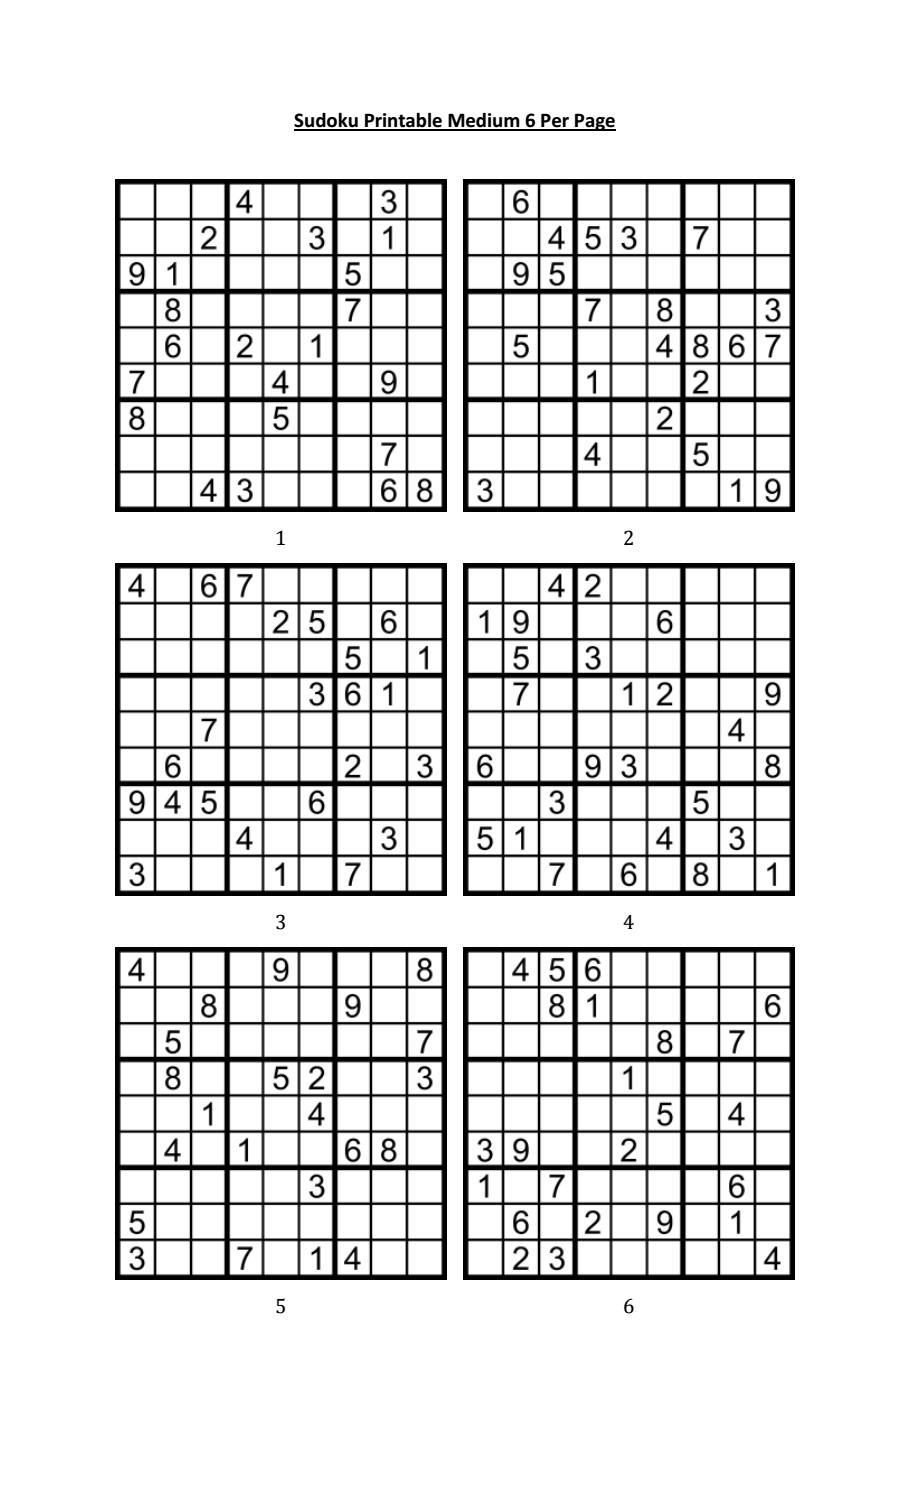 graphic about Printable Sudoku 6 Per Page referred to as Sudoku Printable Medium 6 For every Pageaaron Woodyear - Issuu